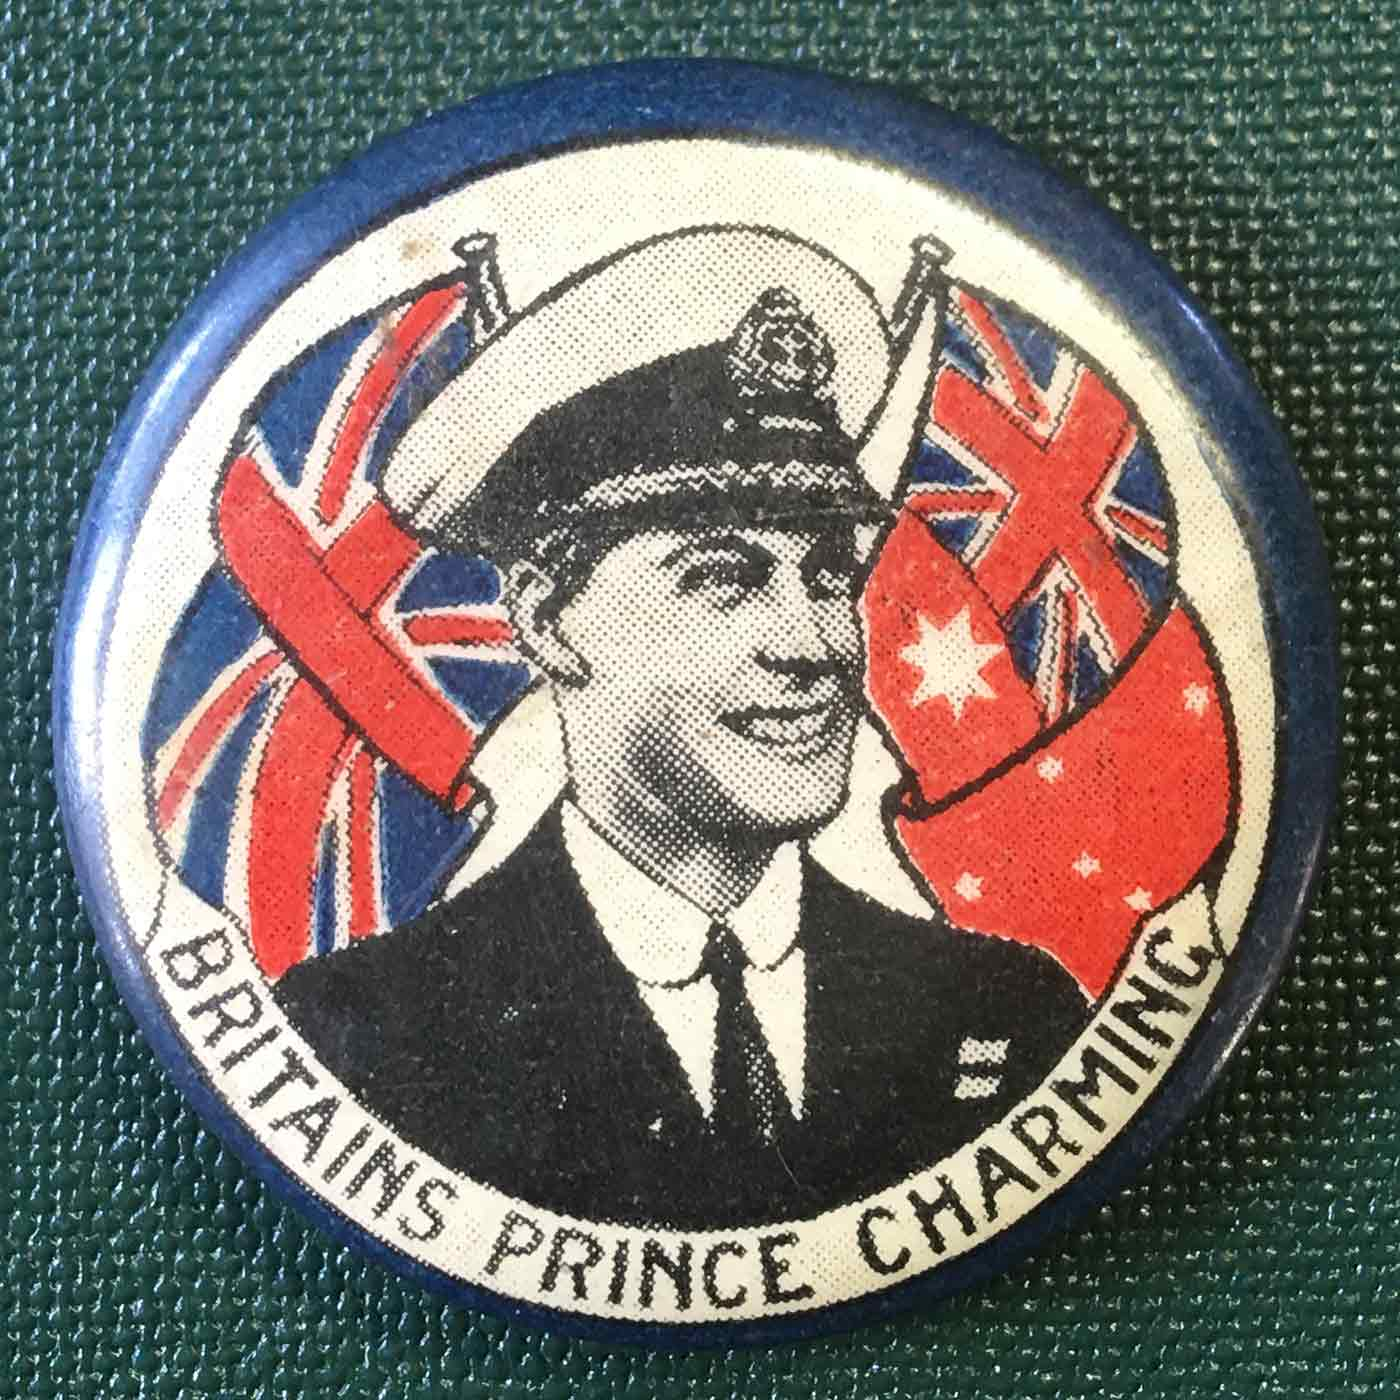 Colour photograph of a badge with an illustration of Prince Edward smiling in front of the British flag. There is a label with the text: BRITAIN'S PRINCE CHARMING. - click to view larger image